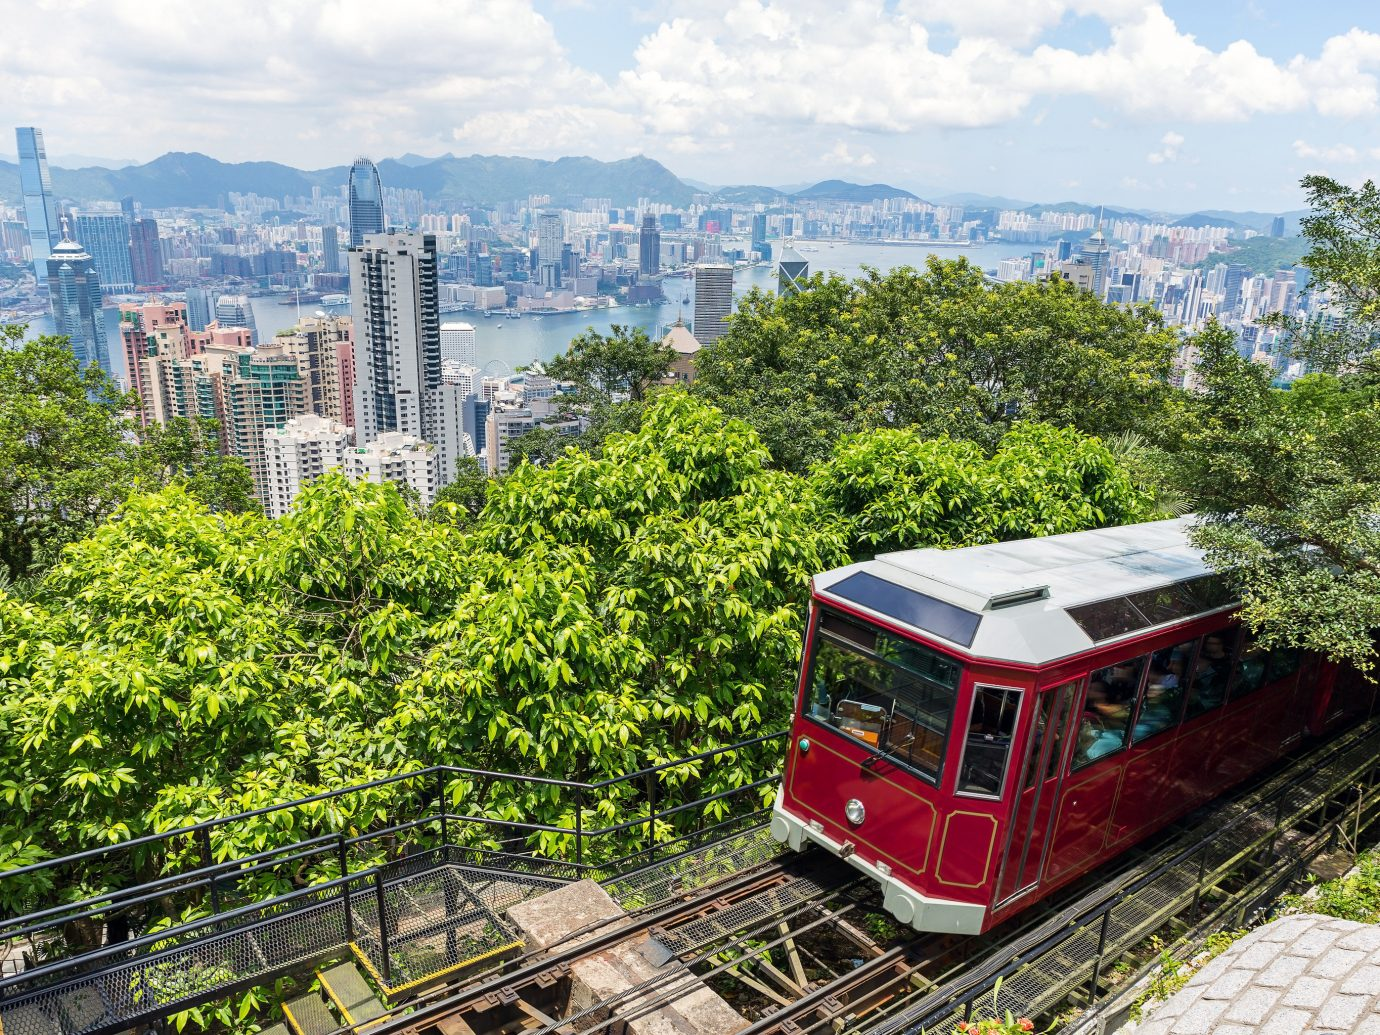 Travel Tips tree outdoor metropolitan area transport urban area City red woody plant plant rolling stock cable car metropolis track funicular skyline vehicle sky real estate landscape cityscape skyscraper public transport tower block traveling